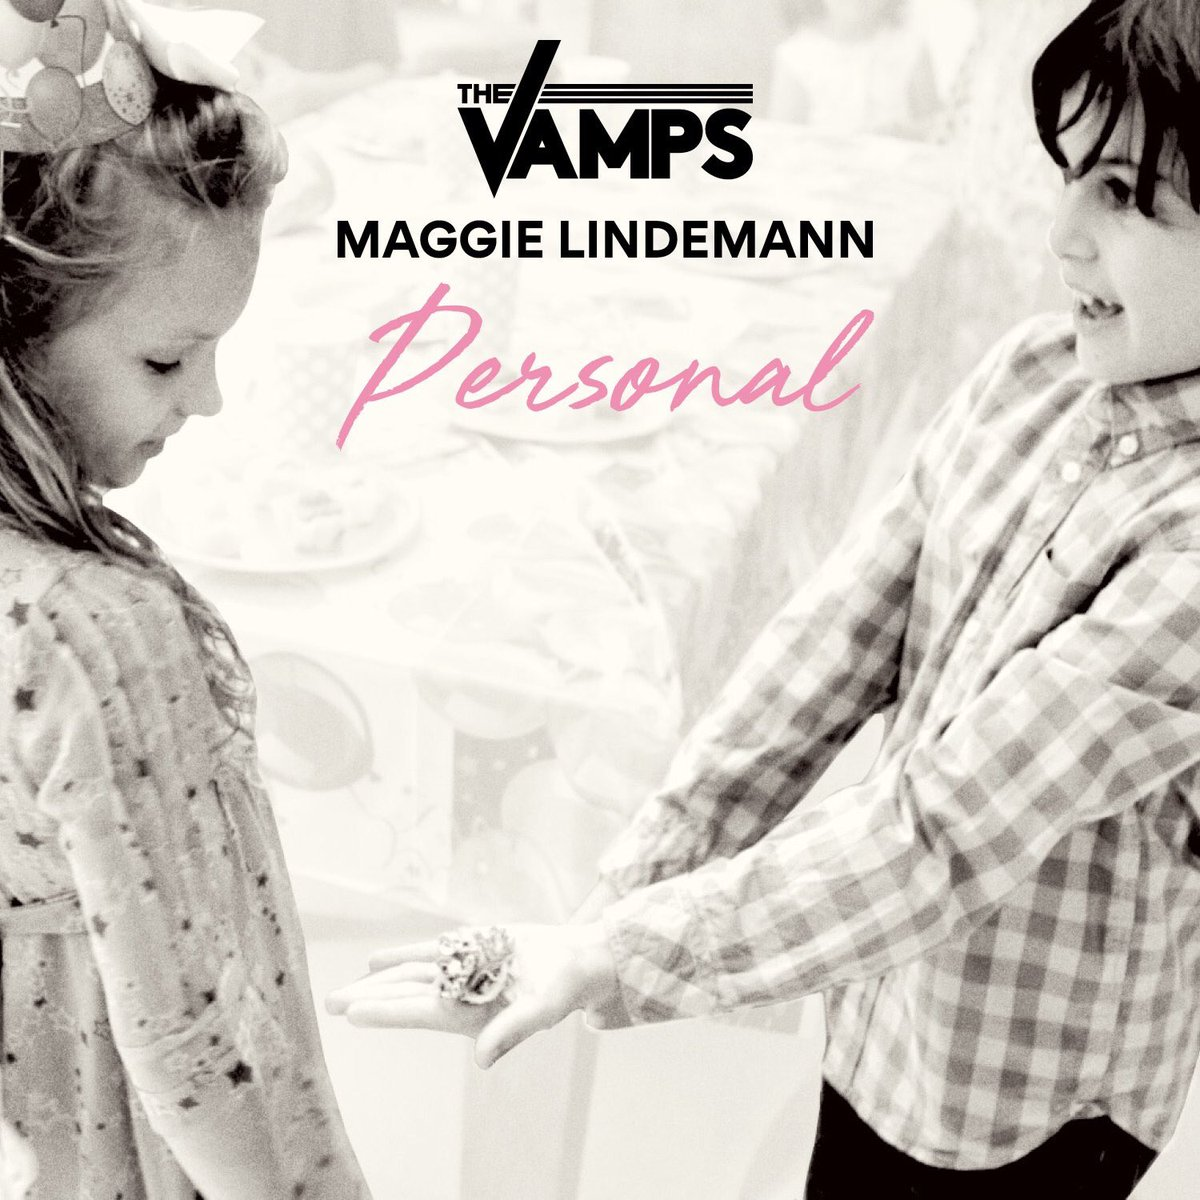 🎶 @TheVampsband's new song #Personal feat. Maggie Lindemann is out now...